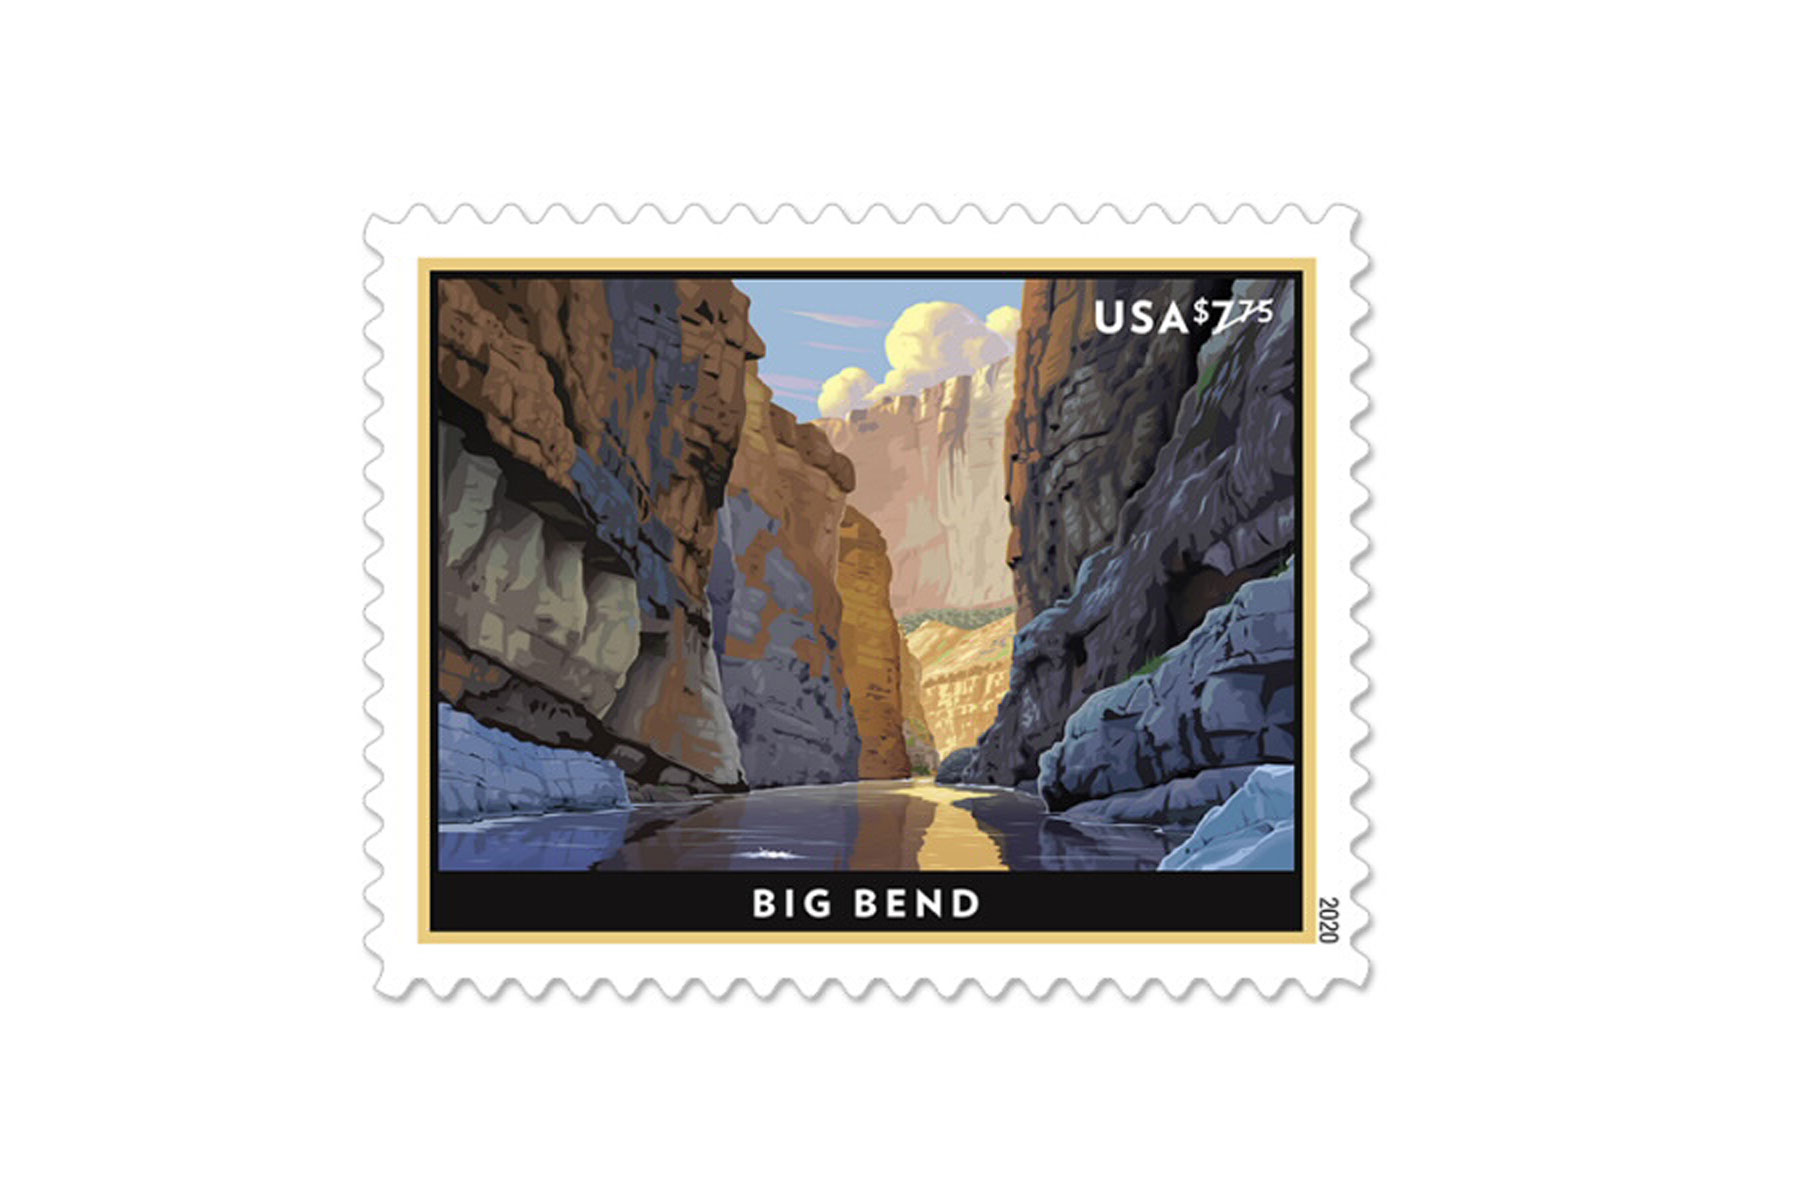 Illustrated valley on postage stamp